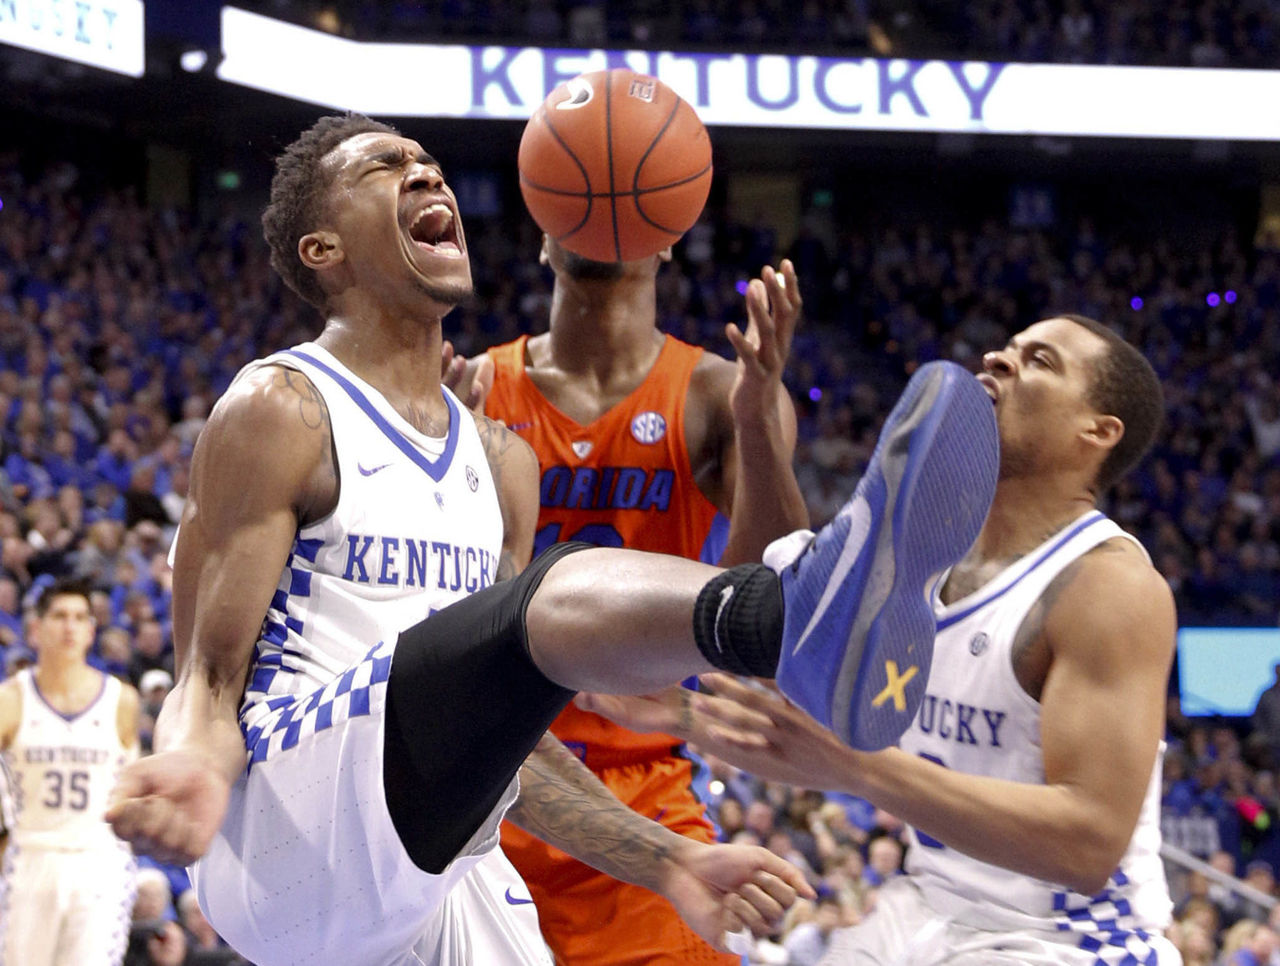 Cropped_2017-02-25t213455z_1807607297_nocid_rtrmadp_3_ncaa-basketball-florida-at-kentucky